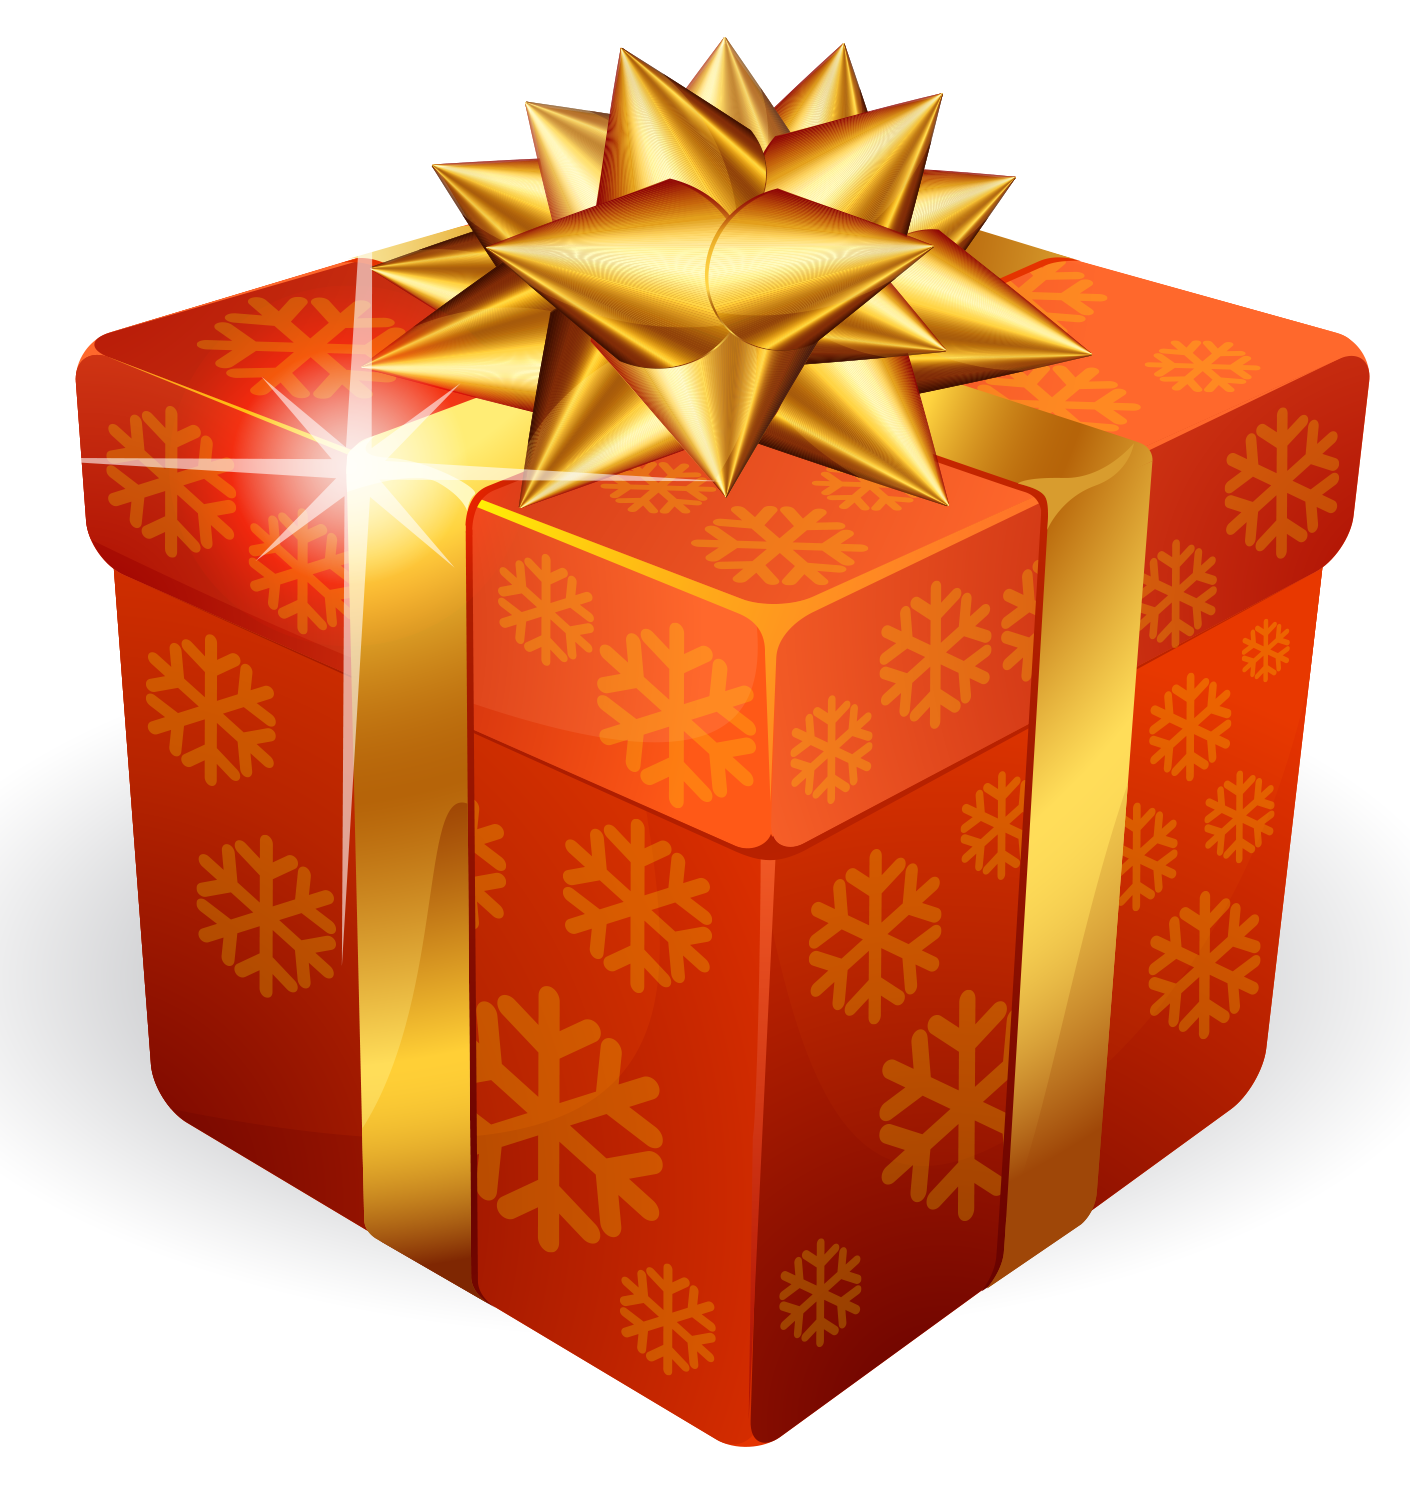 Download Gold Gift Box PNG For Designing Projects.